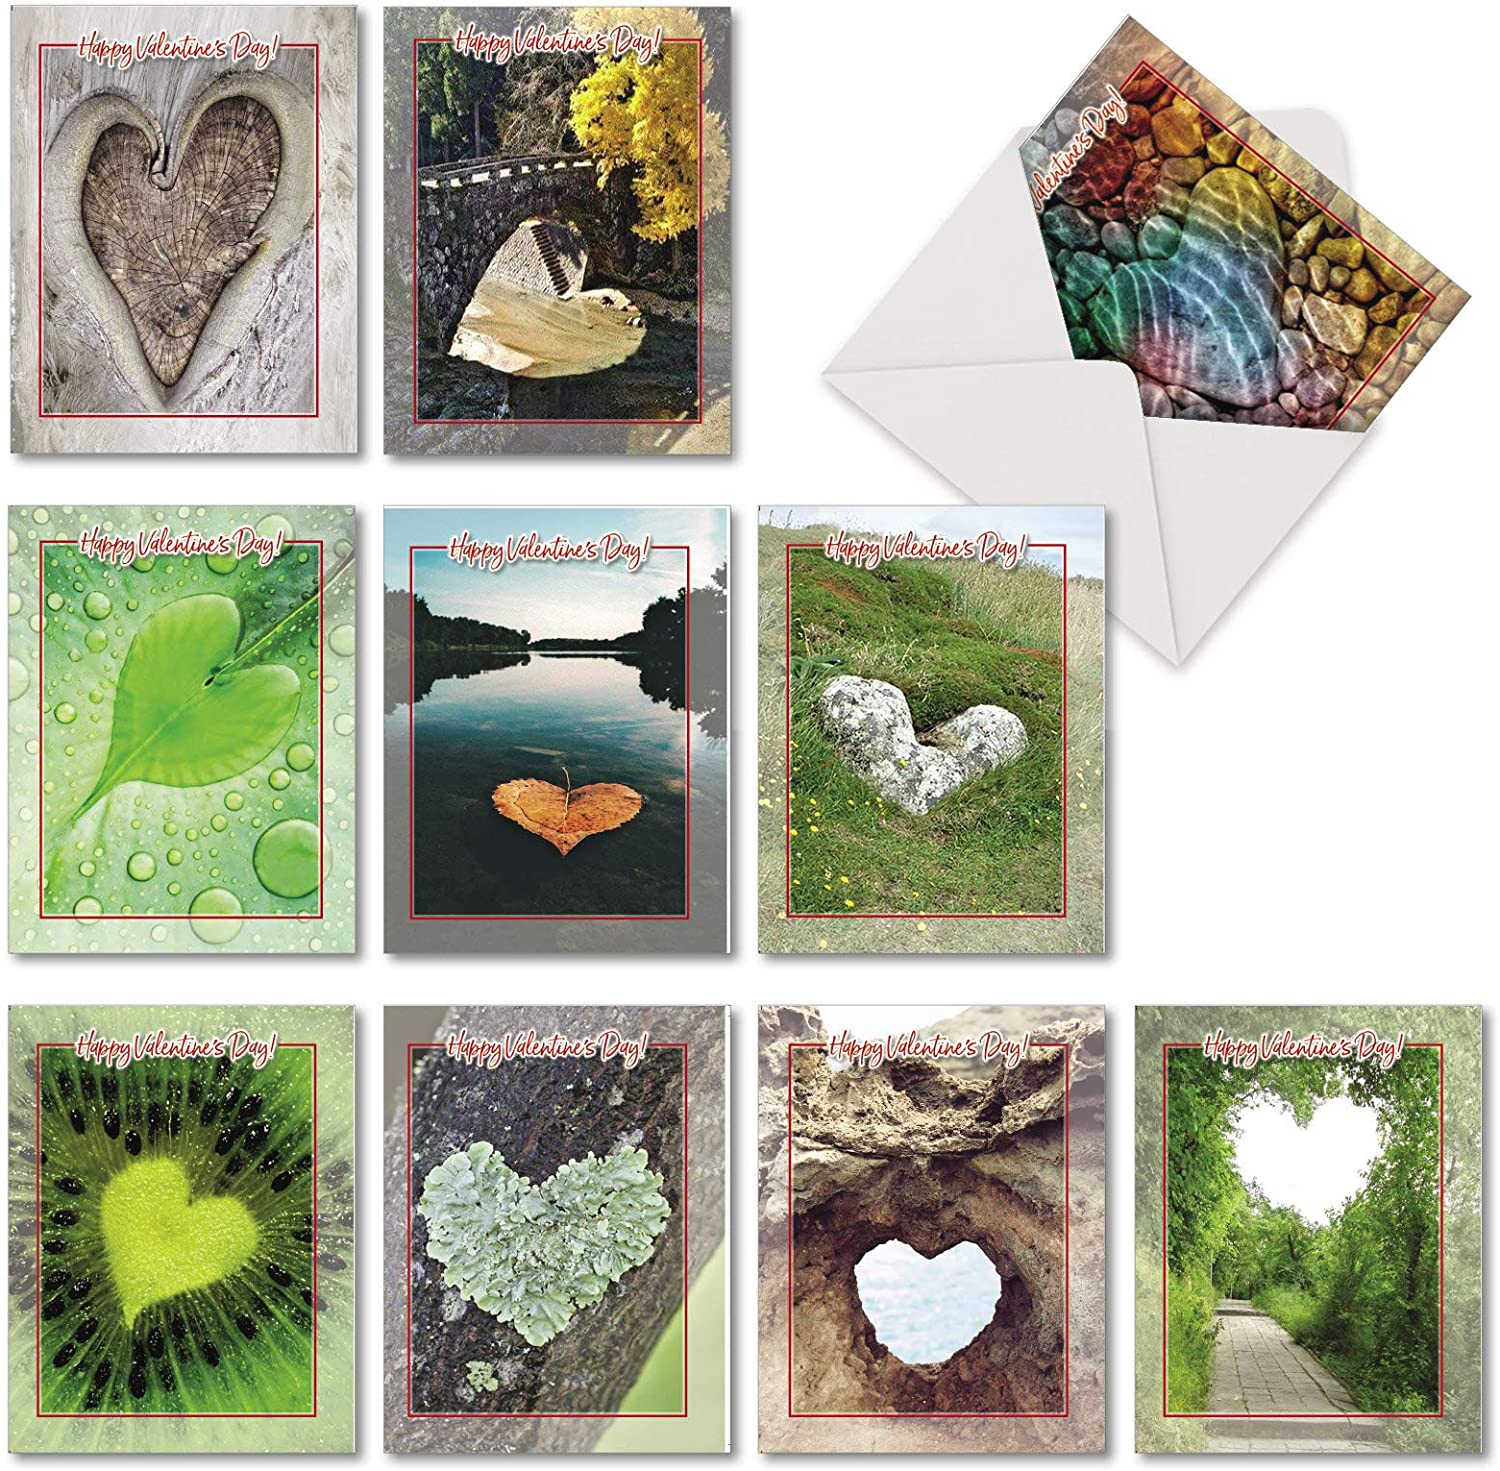 The Best Card Company, Heartscapes - 10 Landscape Heart Valentine's Day Cards with Envelopes (4 x 5.12 Inch) AM6838VDB-B1x10